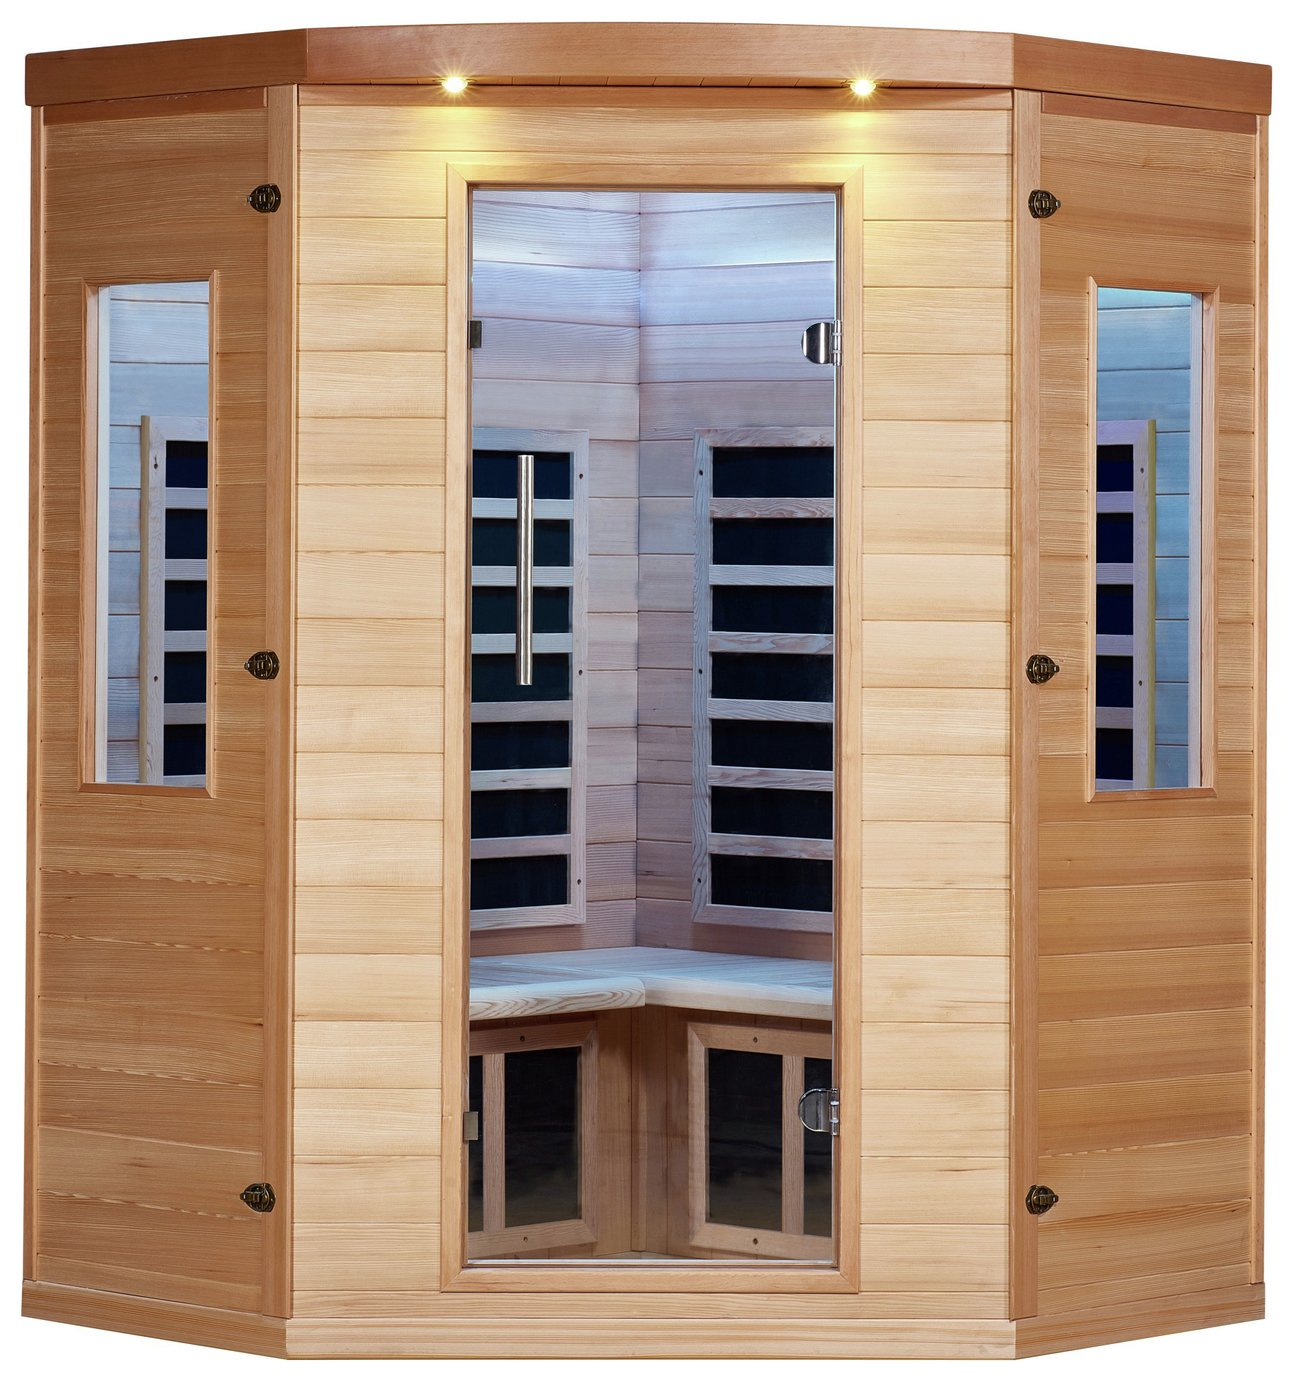 Canadian Spa Aspen 4 Peson Far Corner Sauna - 50HZ from Canadian Spa Company